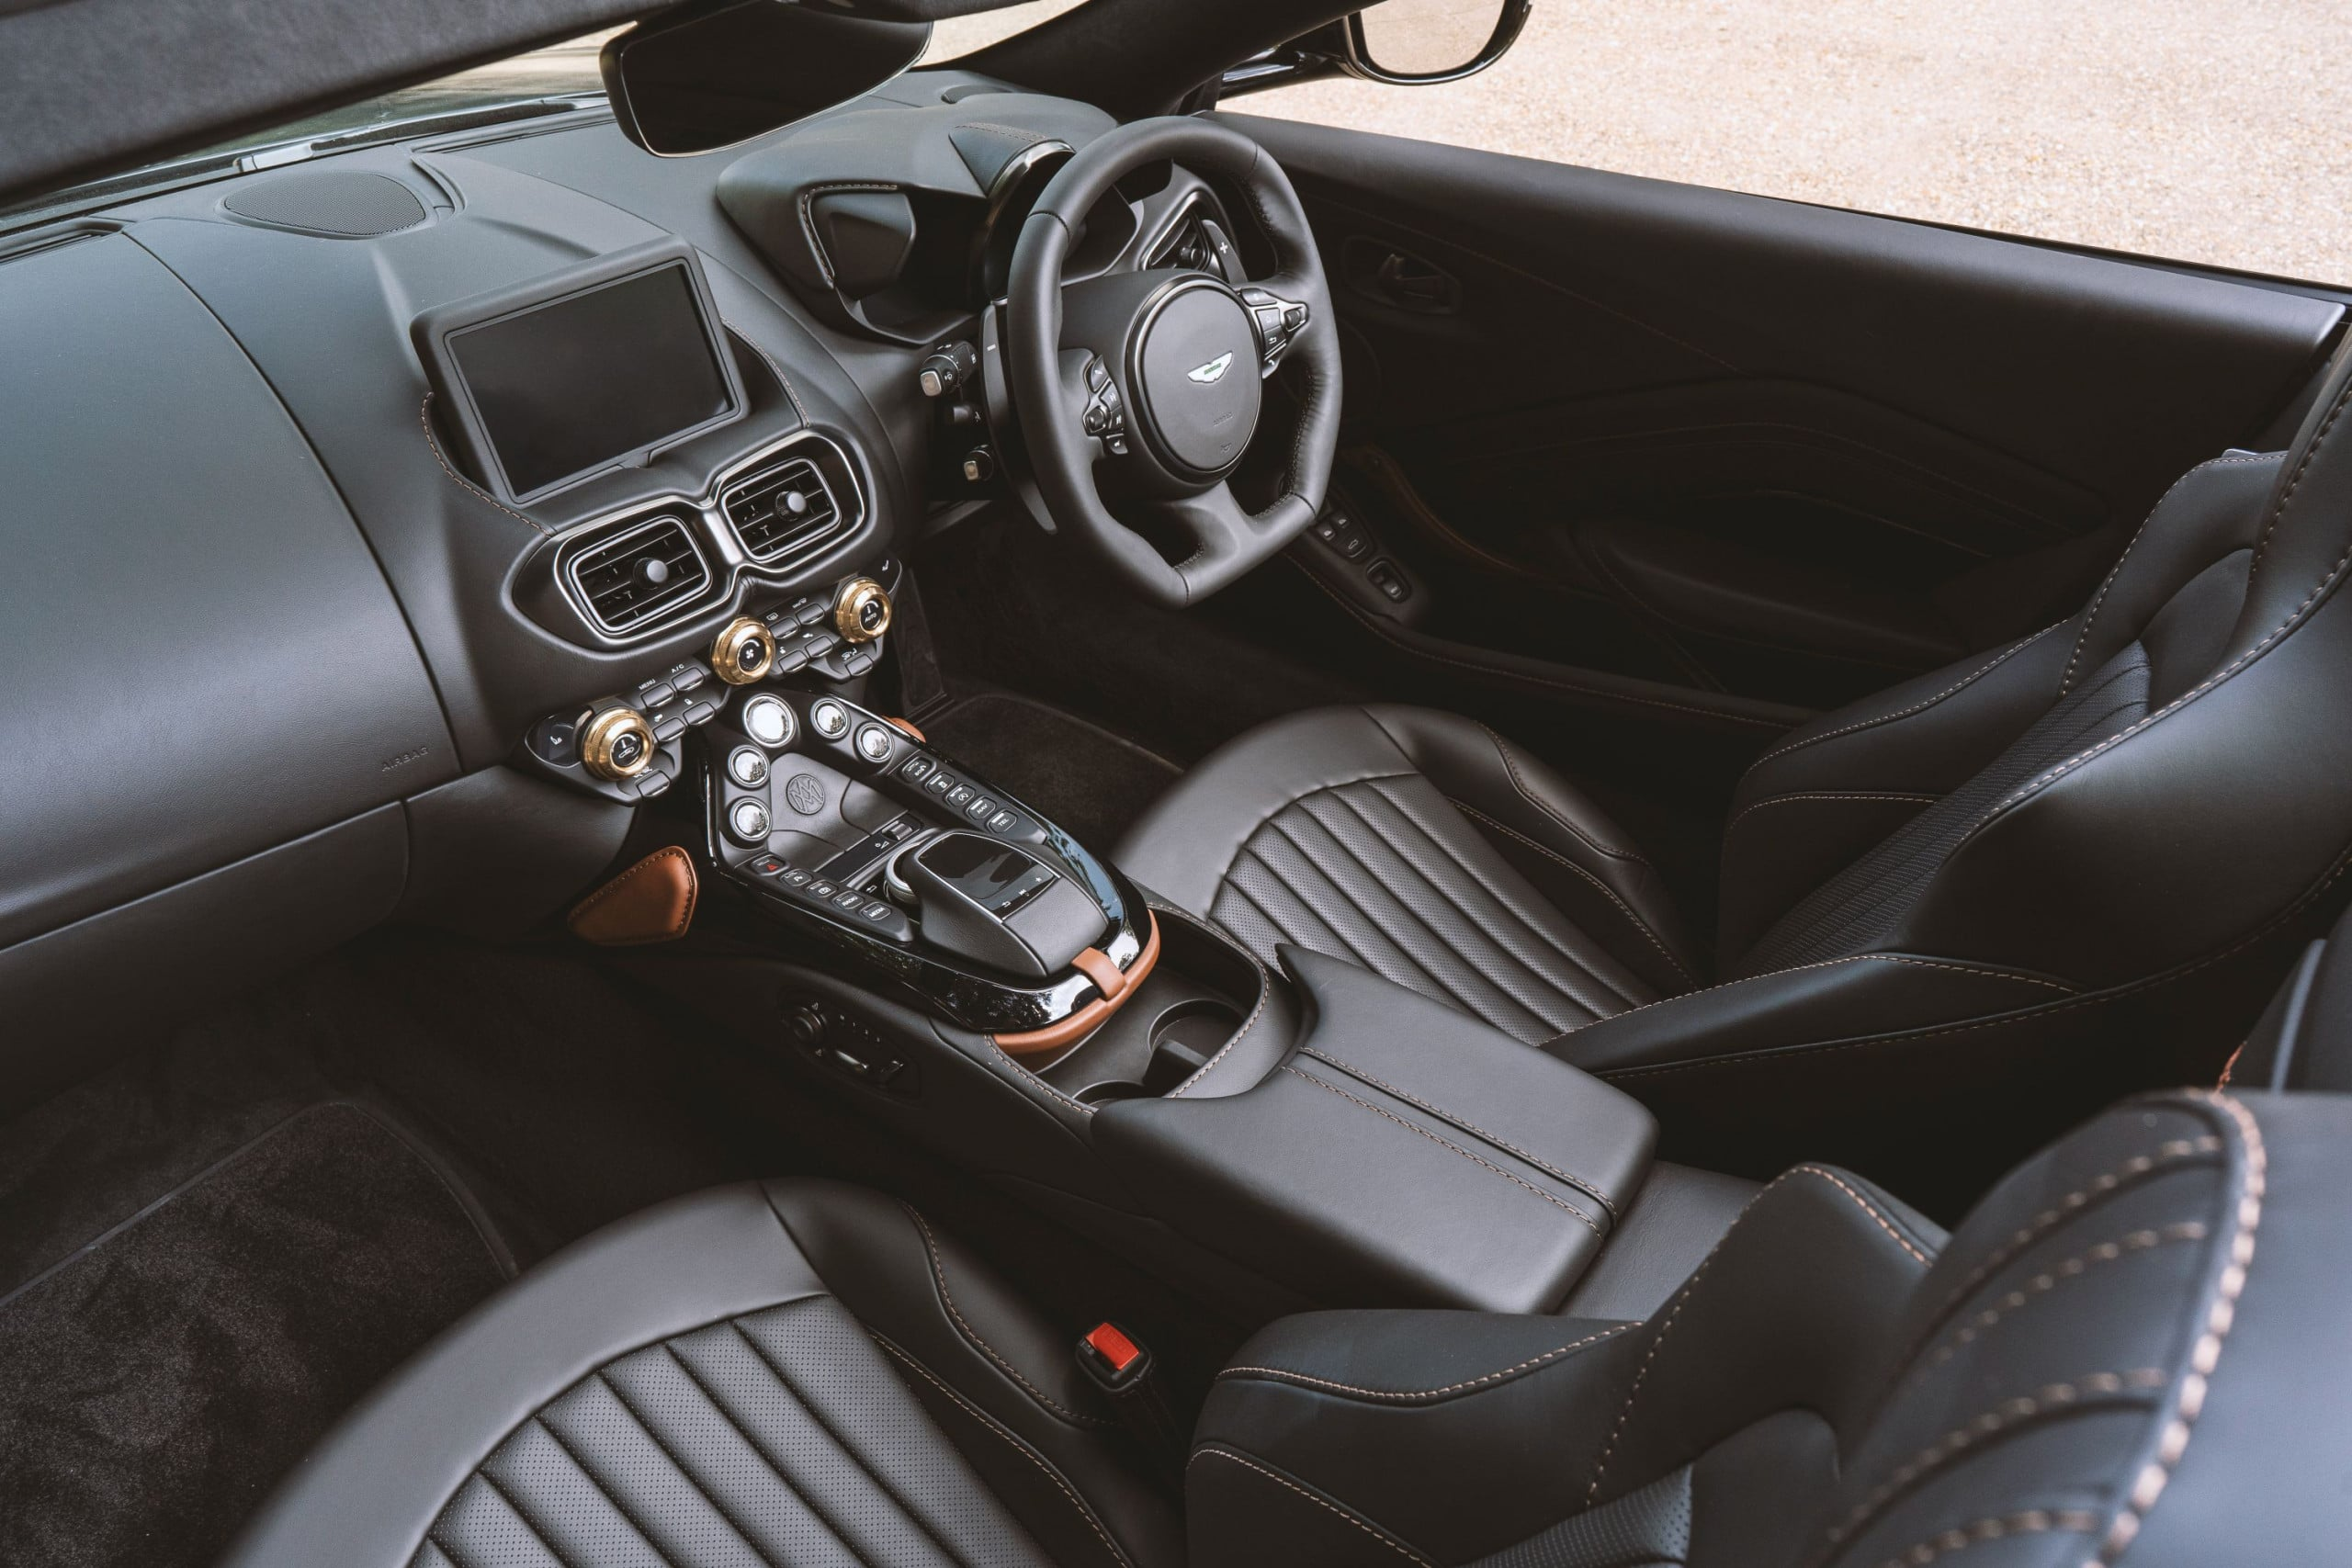 The Q by Aston Martin Vantage Roadster